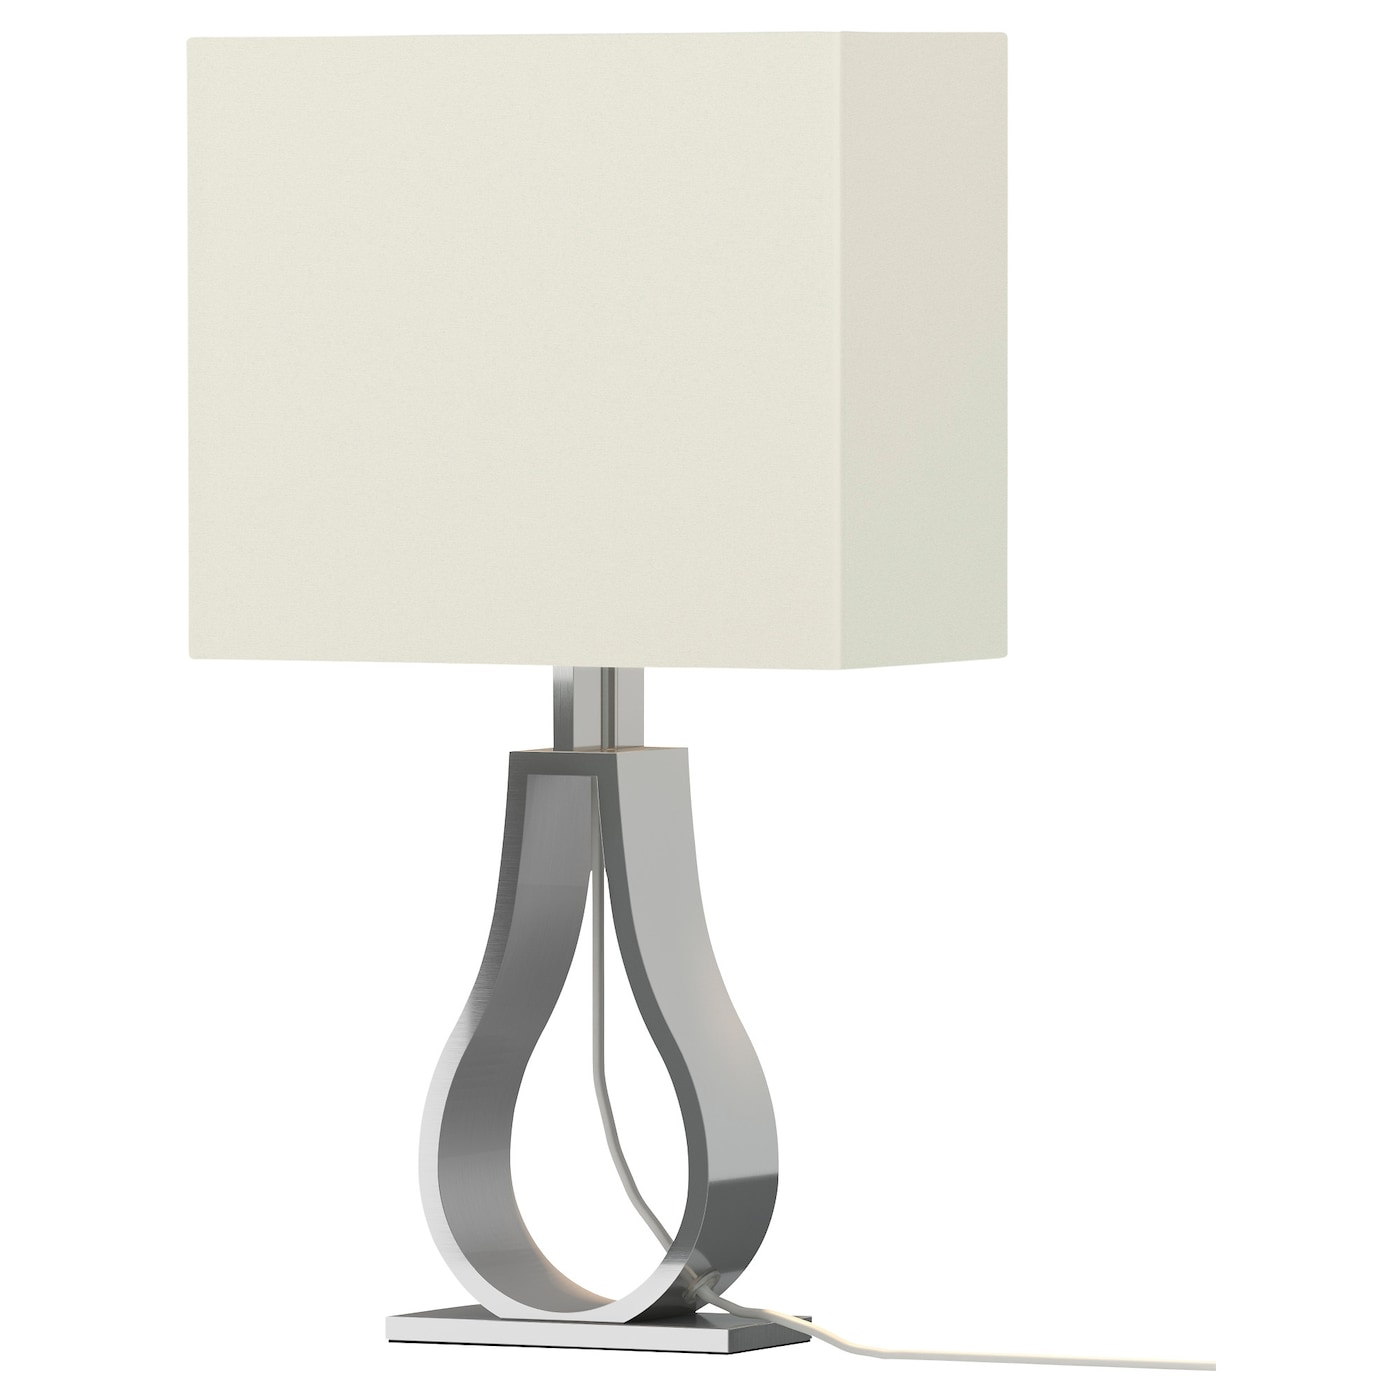 klabb table lamp off white ikea. Black Bedroom Furniture Sets. Home Design Ideas